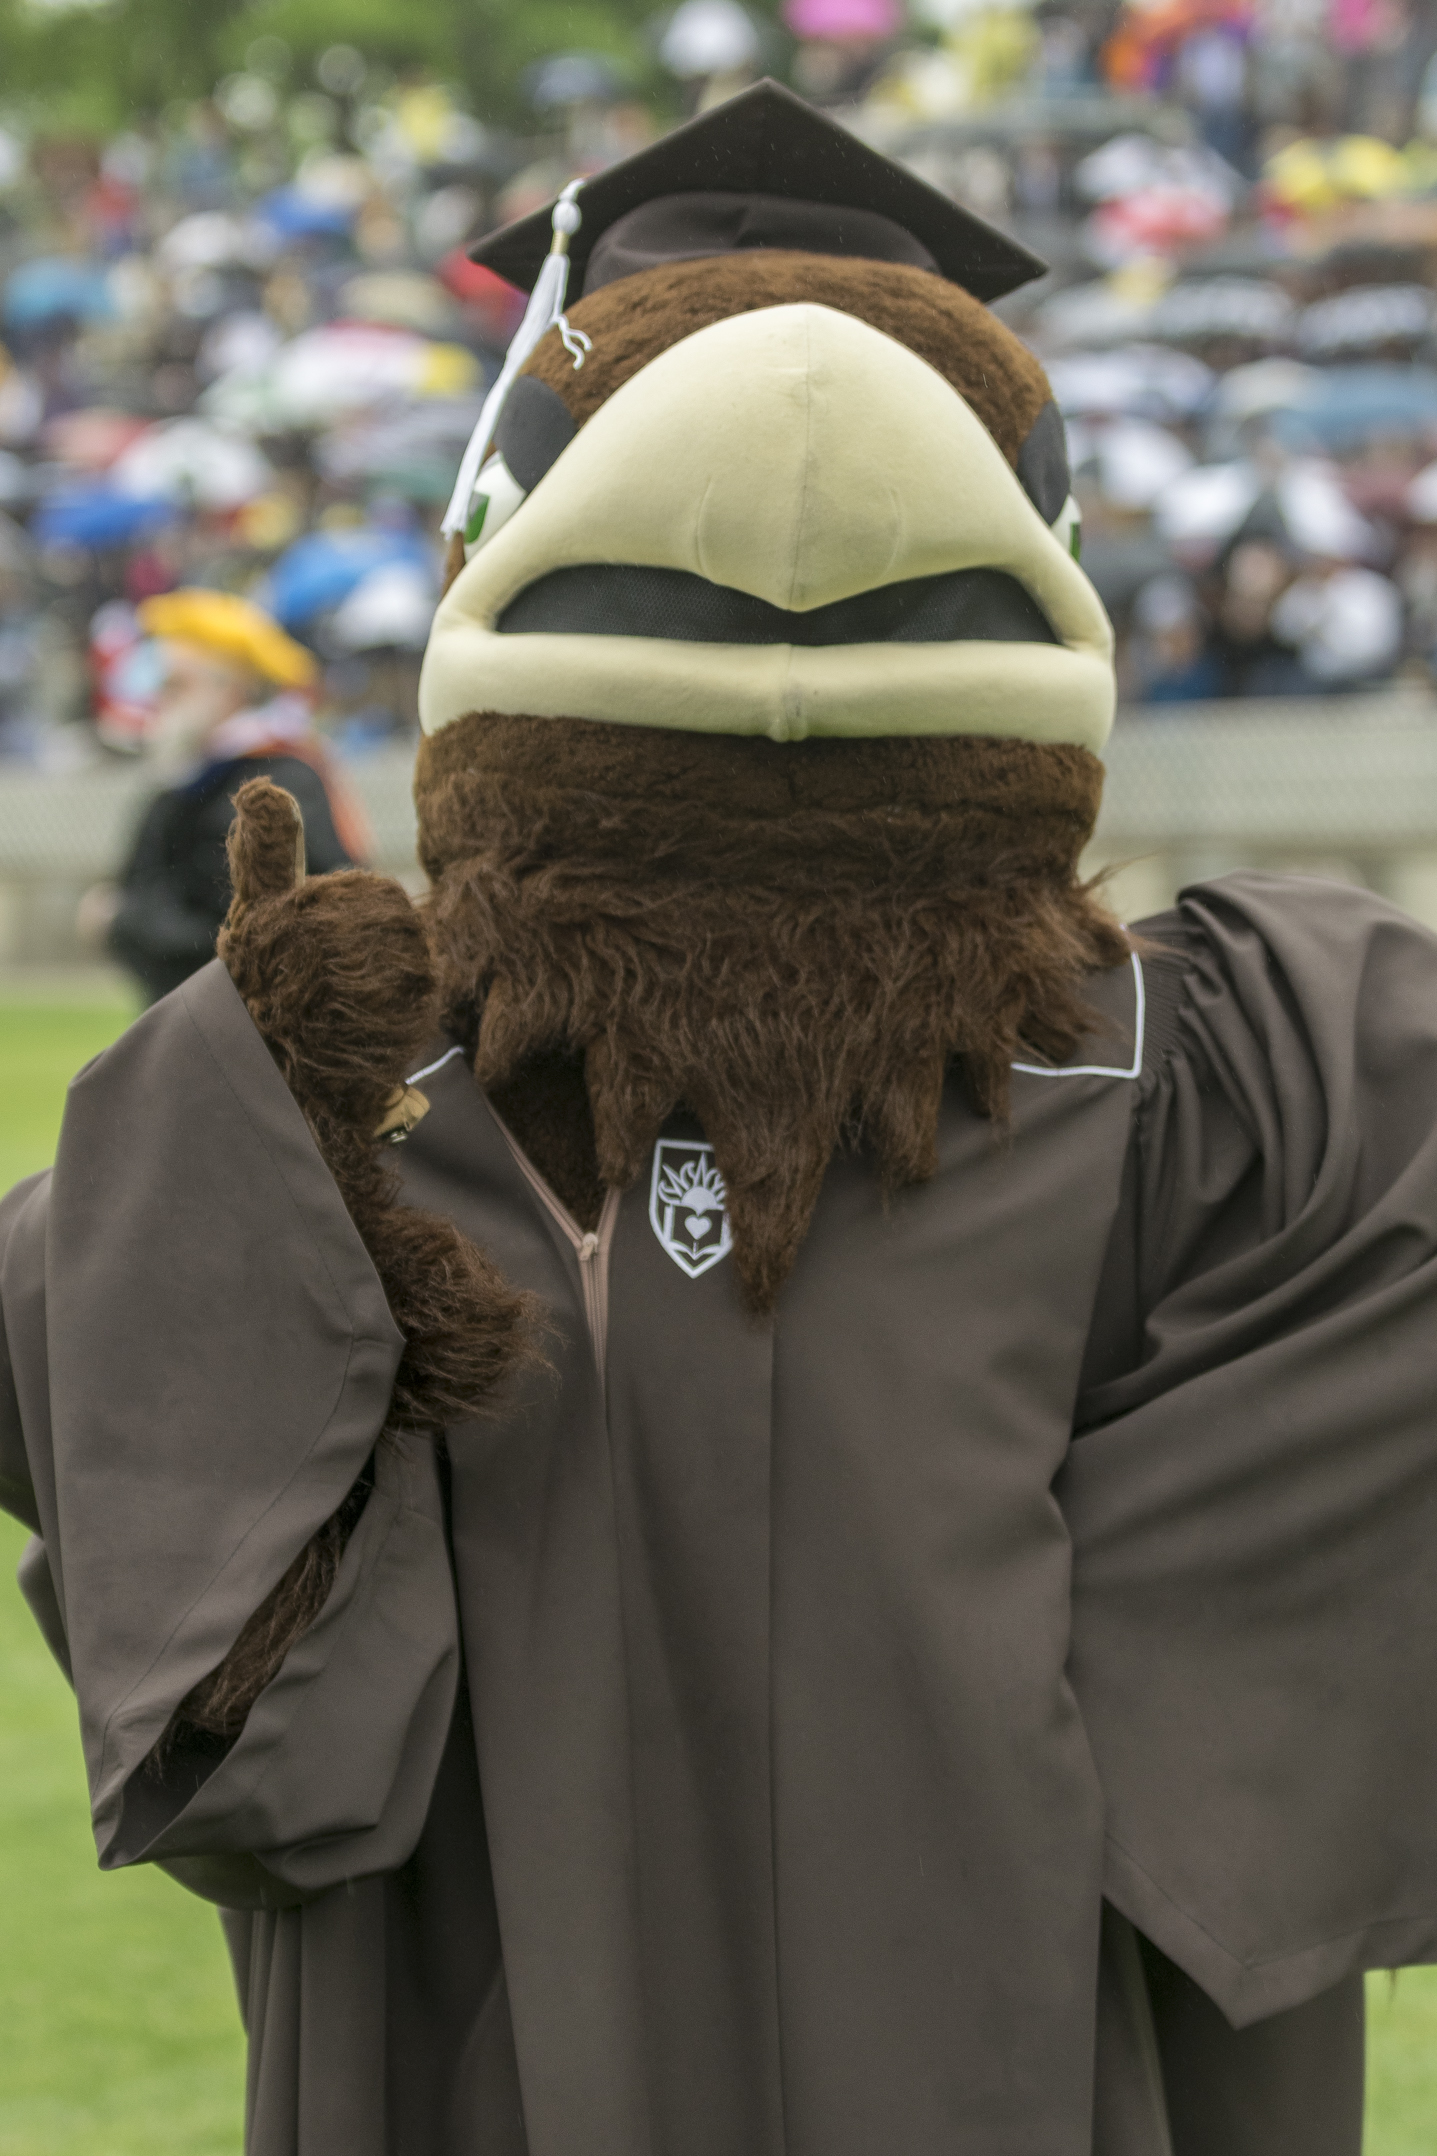 Lehigh's mascot, Clutch, gives a thumbs up during commencement Monday, May 22, 2017, in Goodman Stadium. Like the Lehigh graduates, Clutch received a cap and gown for the big day. (Roshan Giyanani/B&W Staff)